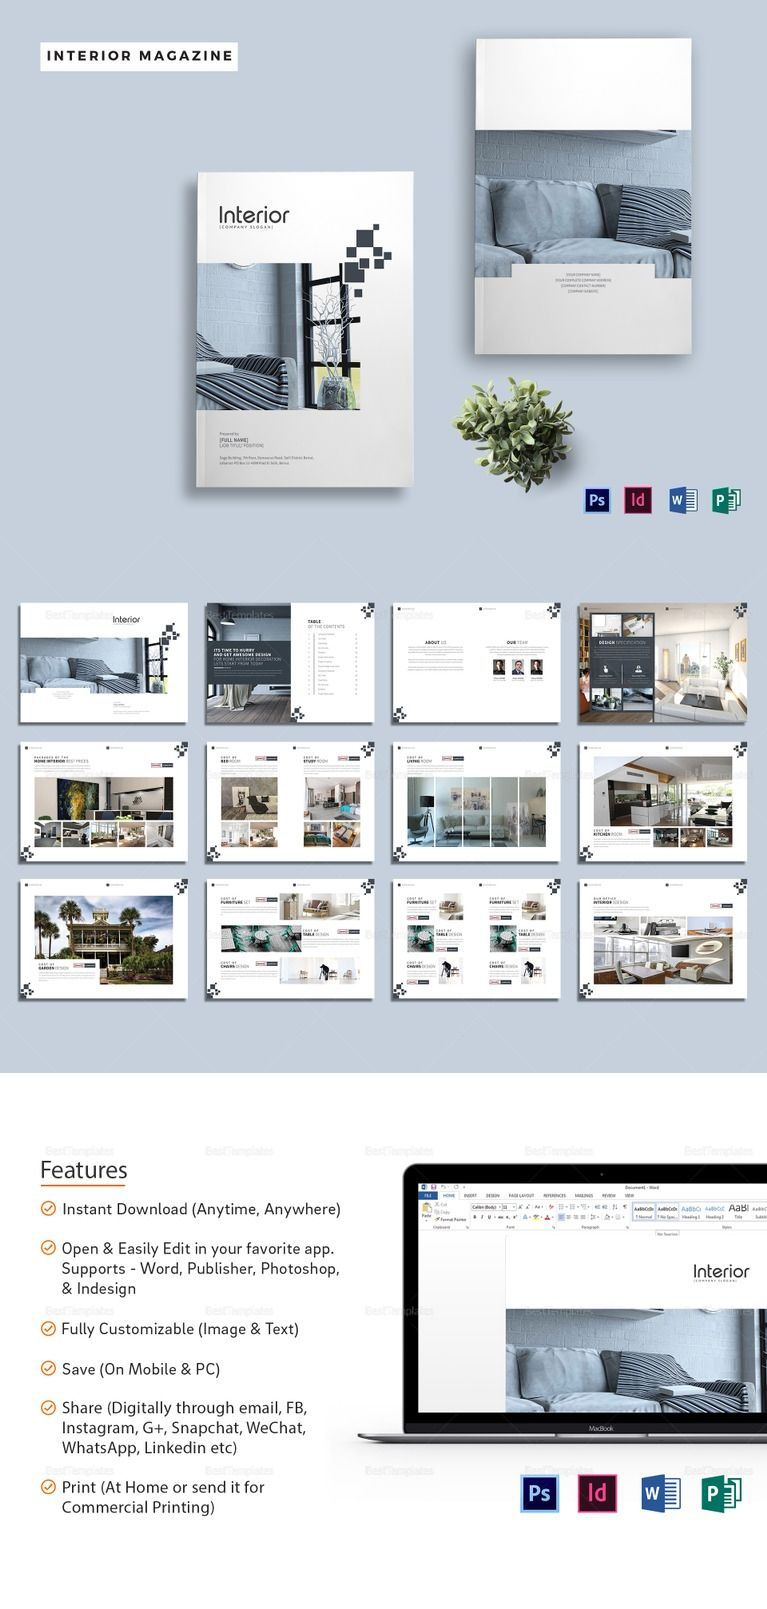 003 Best Magazine Template For Microsoft Word Picture  Layout Design DownloadFull